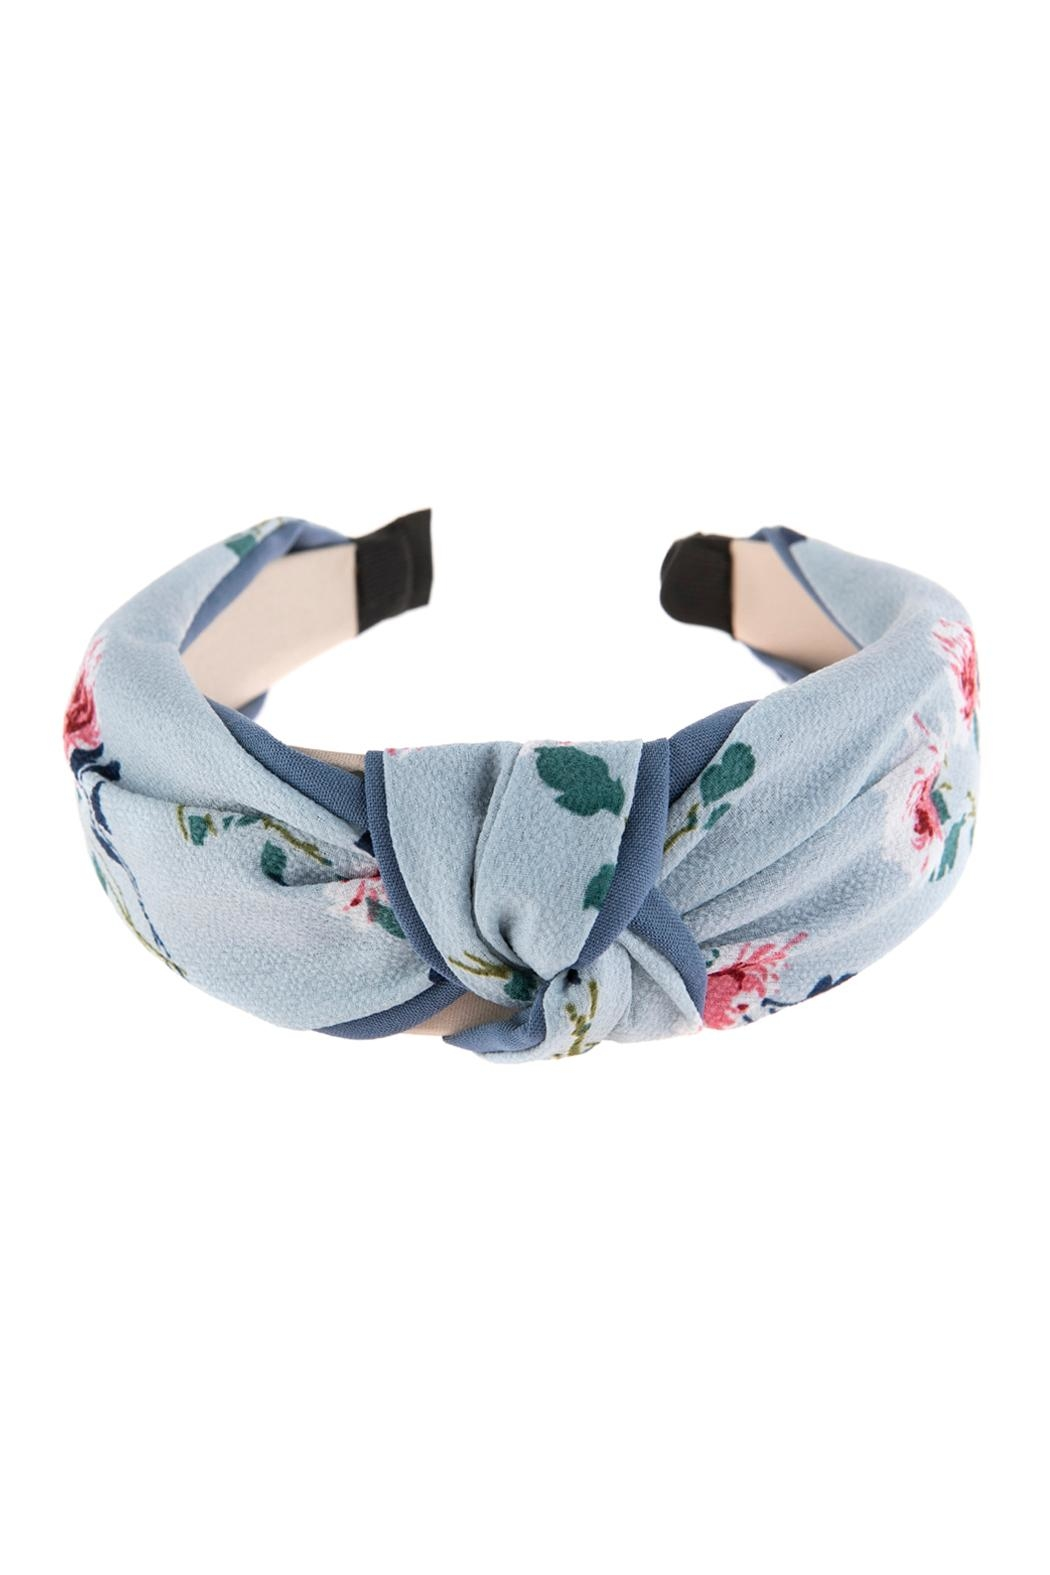 Riah Fashion Floral Printed-Knotted-Fabric-Headband - Main Image